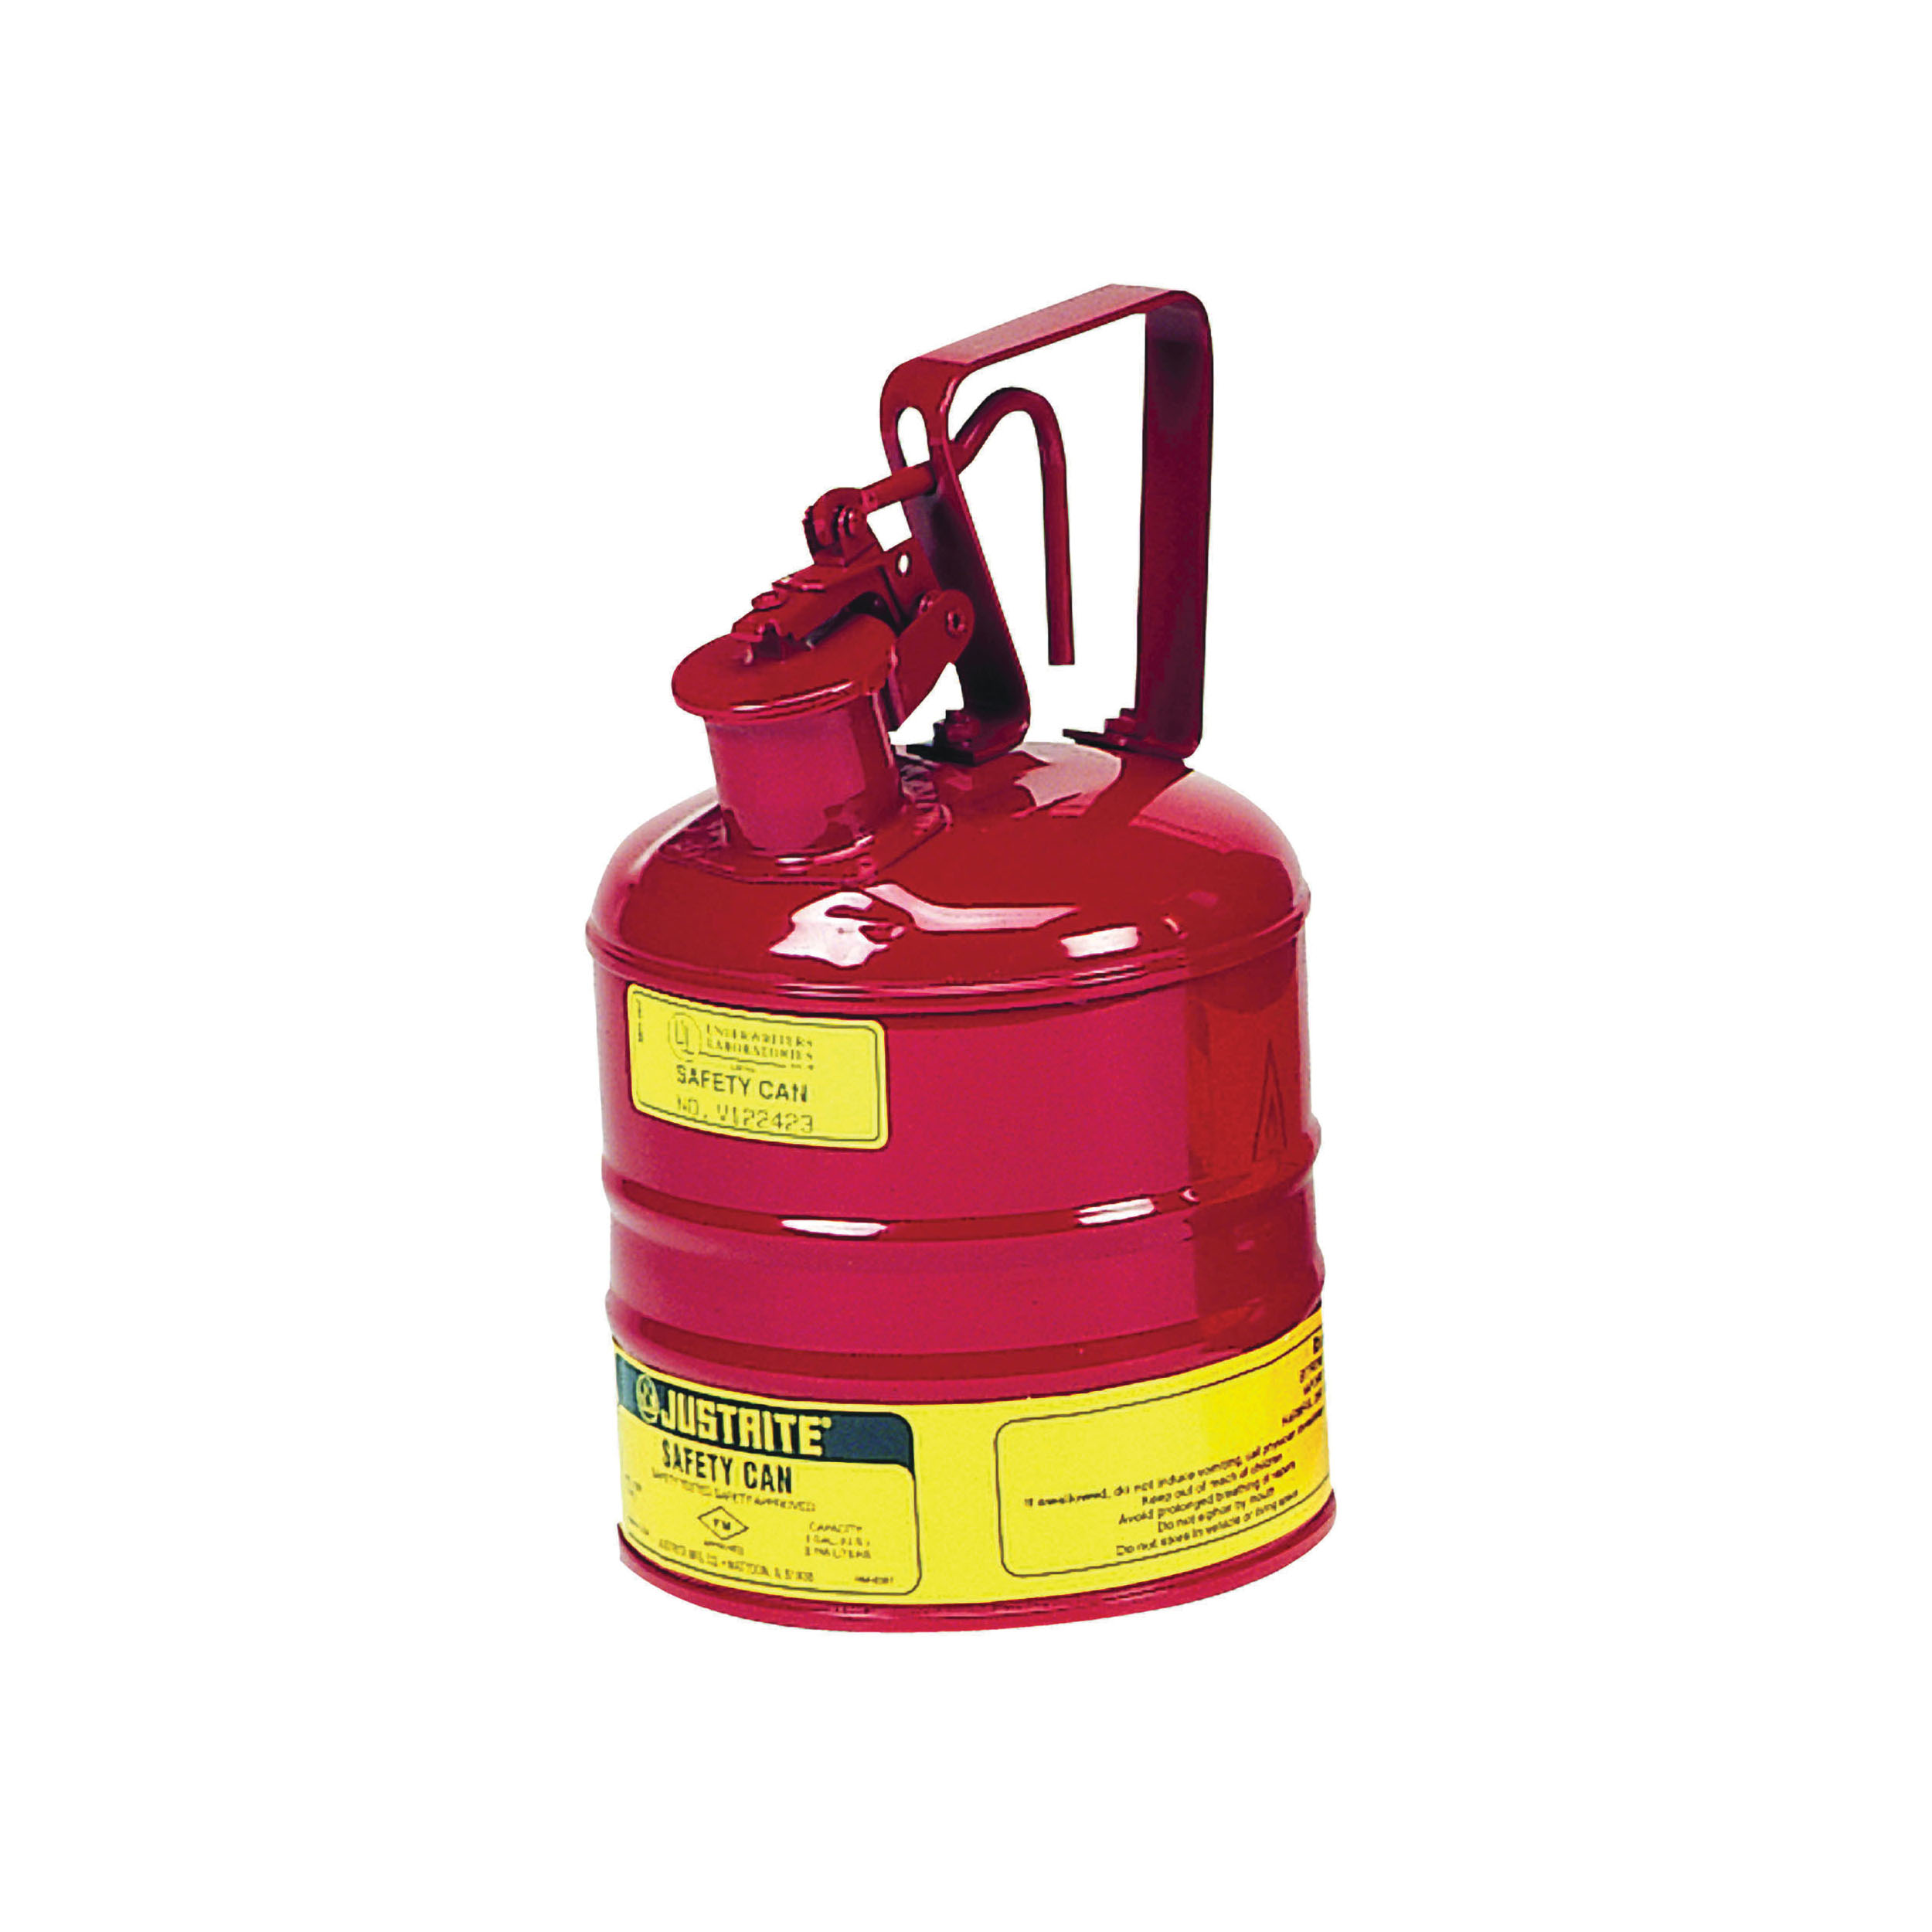 Justrite® 10301 Type I Safety Can With Trigger Handle and Stainless Steel Flame Arrester, 1 gal Capacity, 7-1/4 in Dia x 11-1/2 in H, Steel, Red